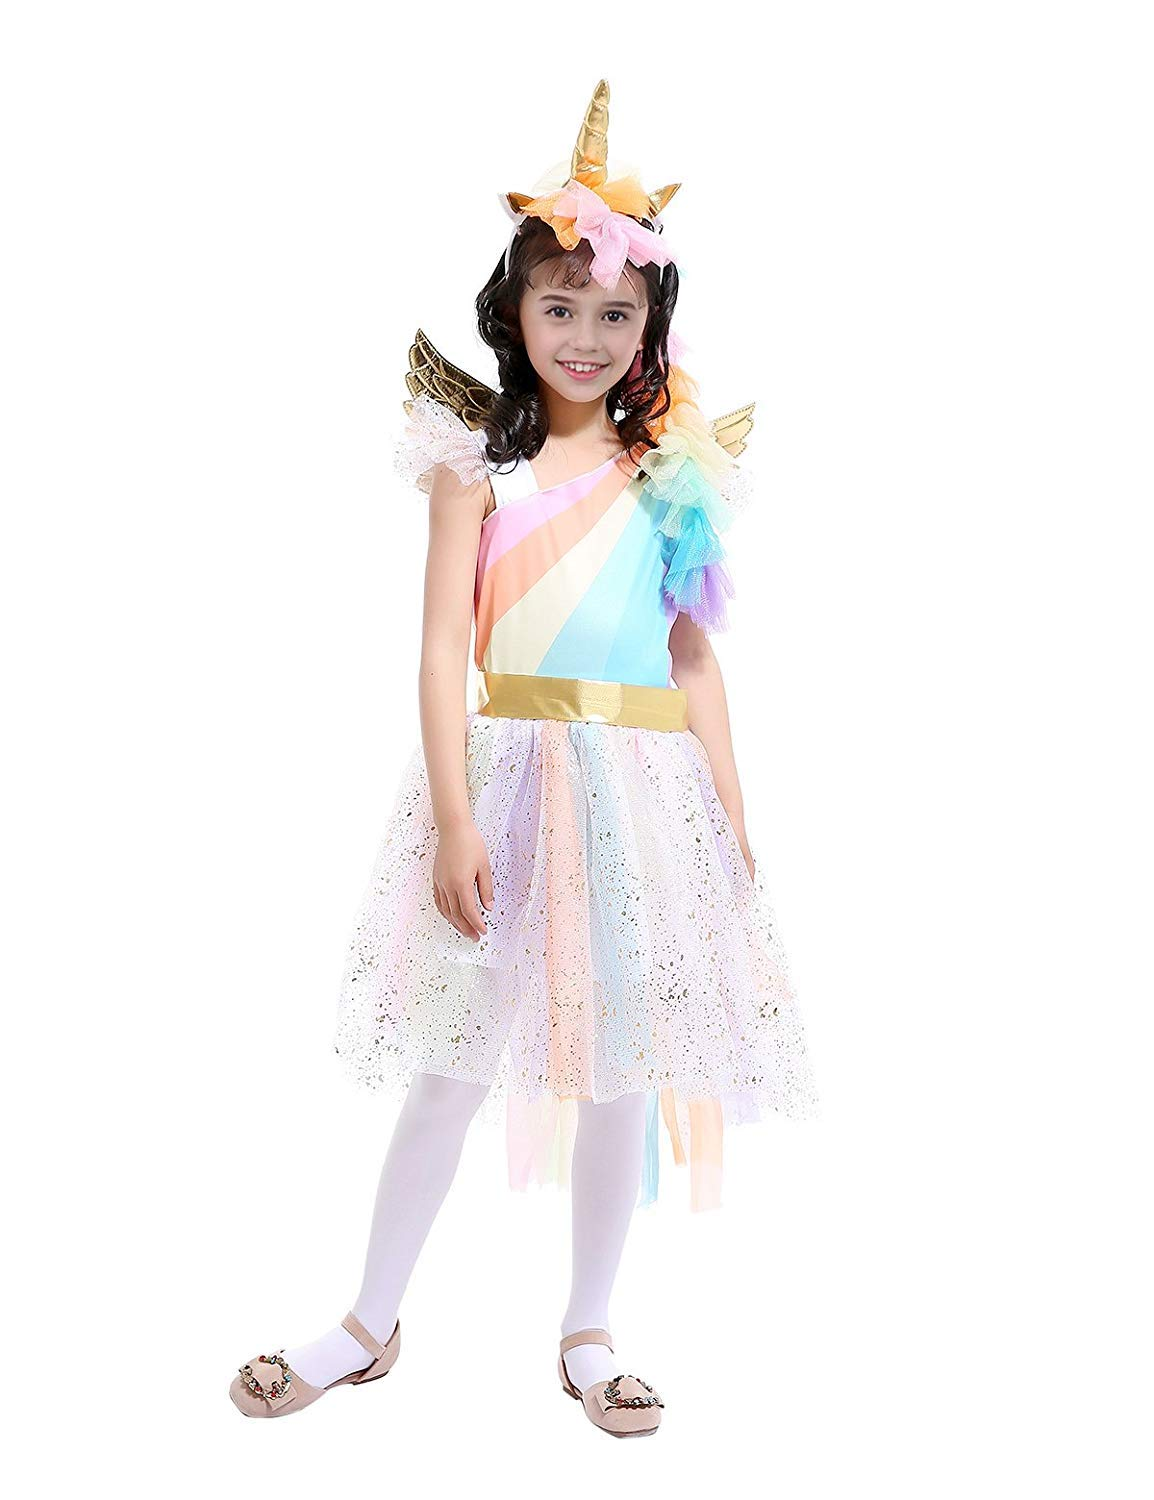 Rainbow Unicorn Costume Halloween Girls Dress Up Costumes for Party Special Occasion X-Large